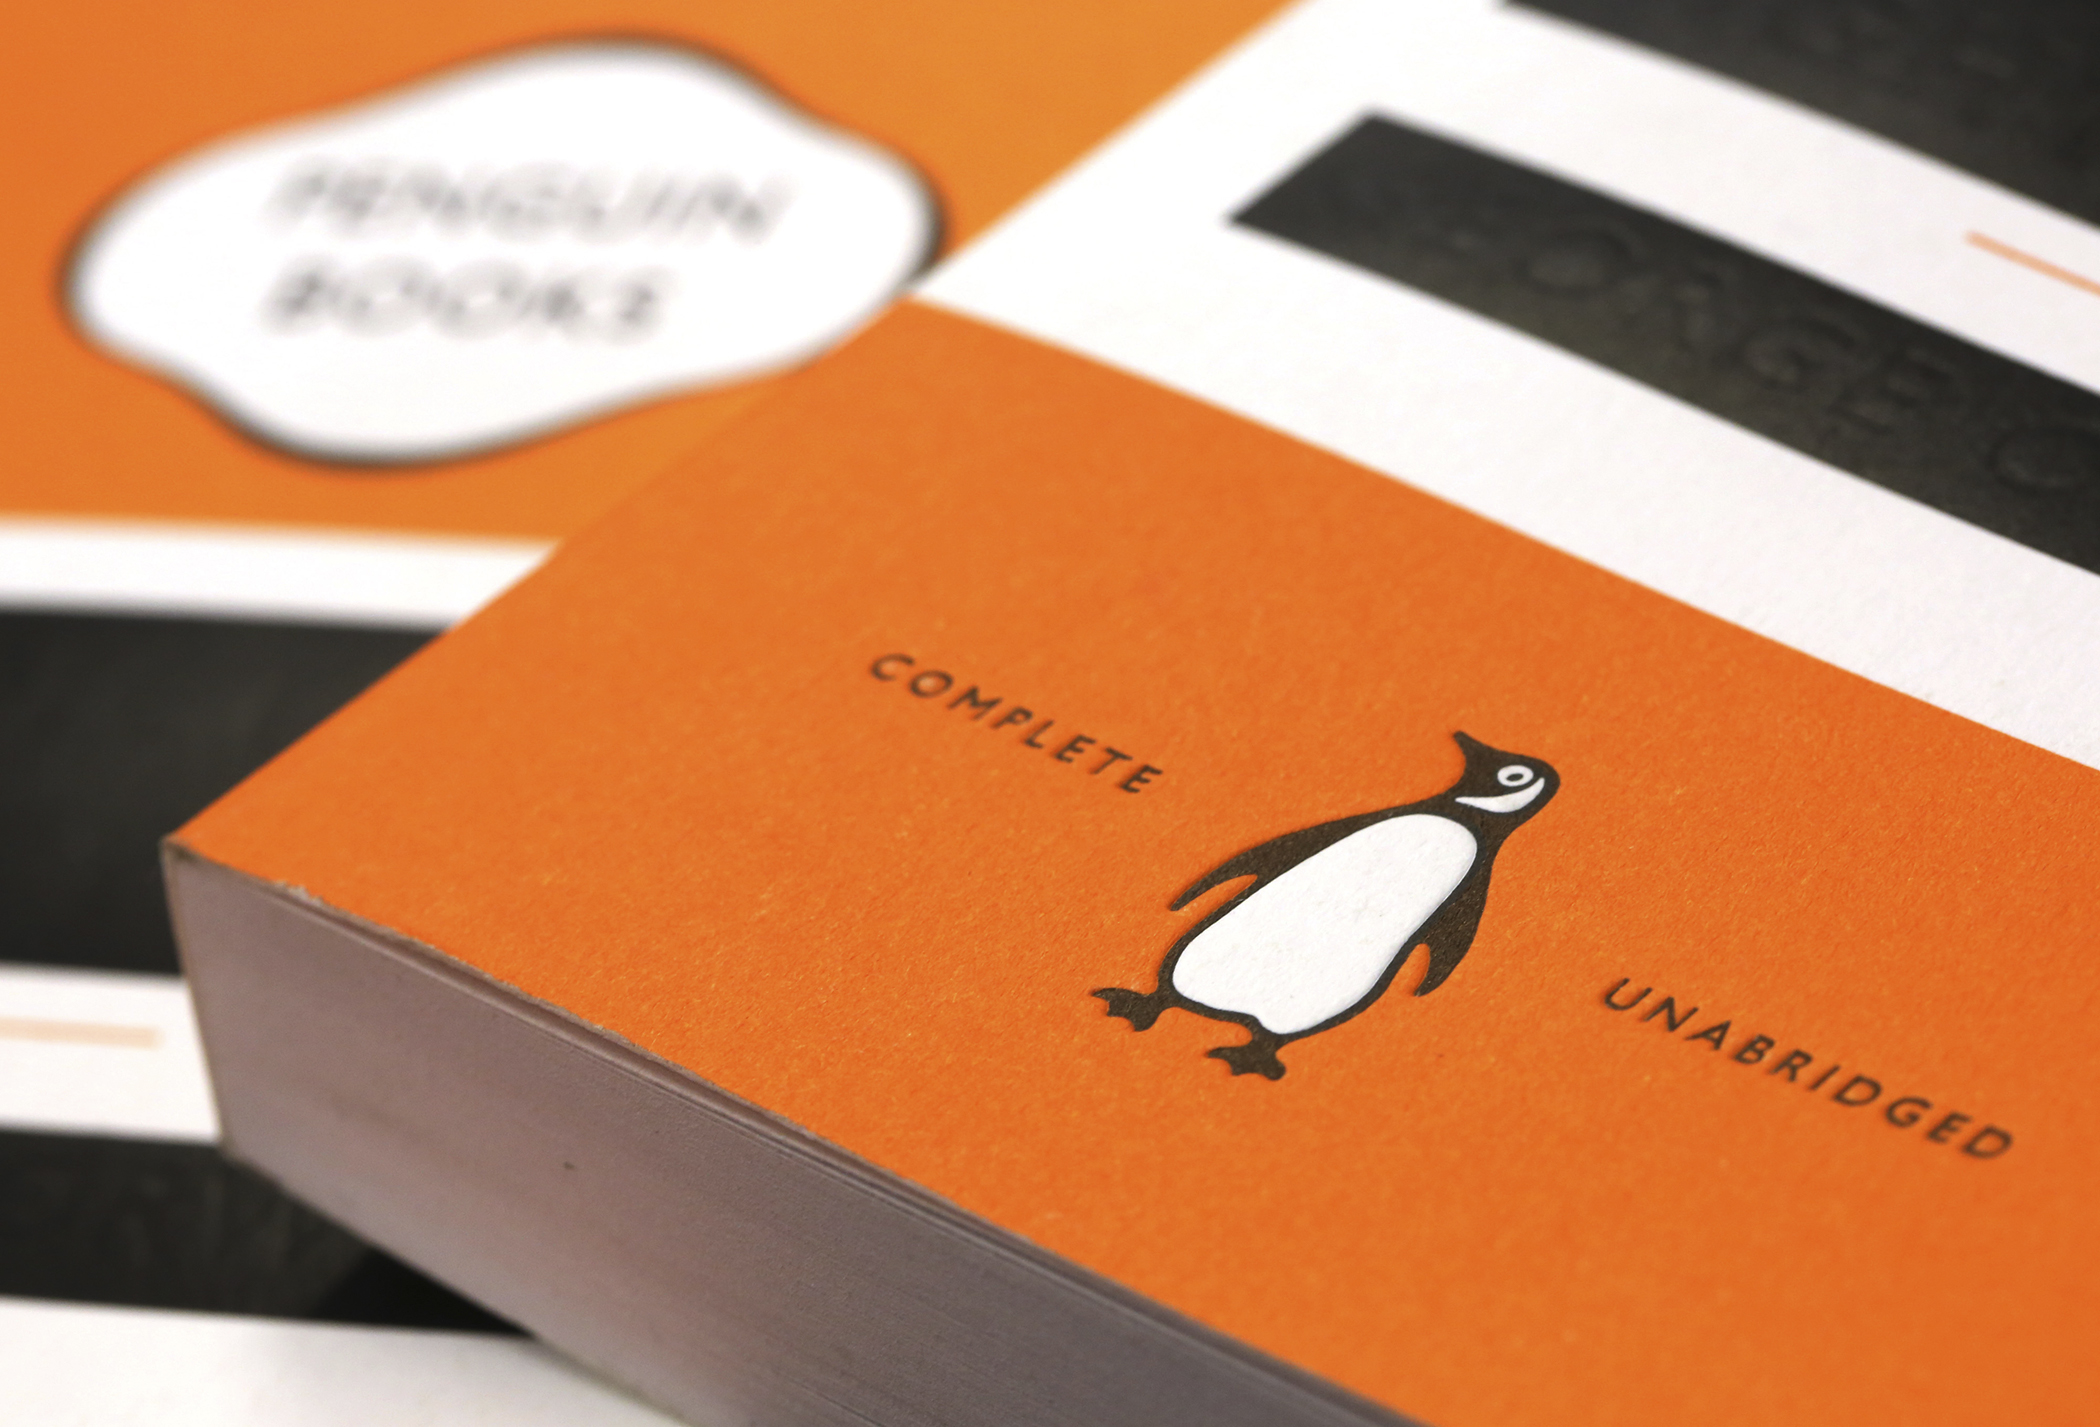 Penguin Random House, the world's largest book publisher, is the latest employer to offer help paying down workers' student debt.